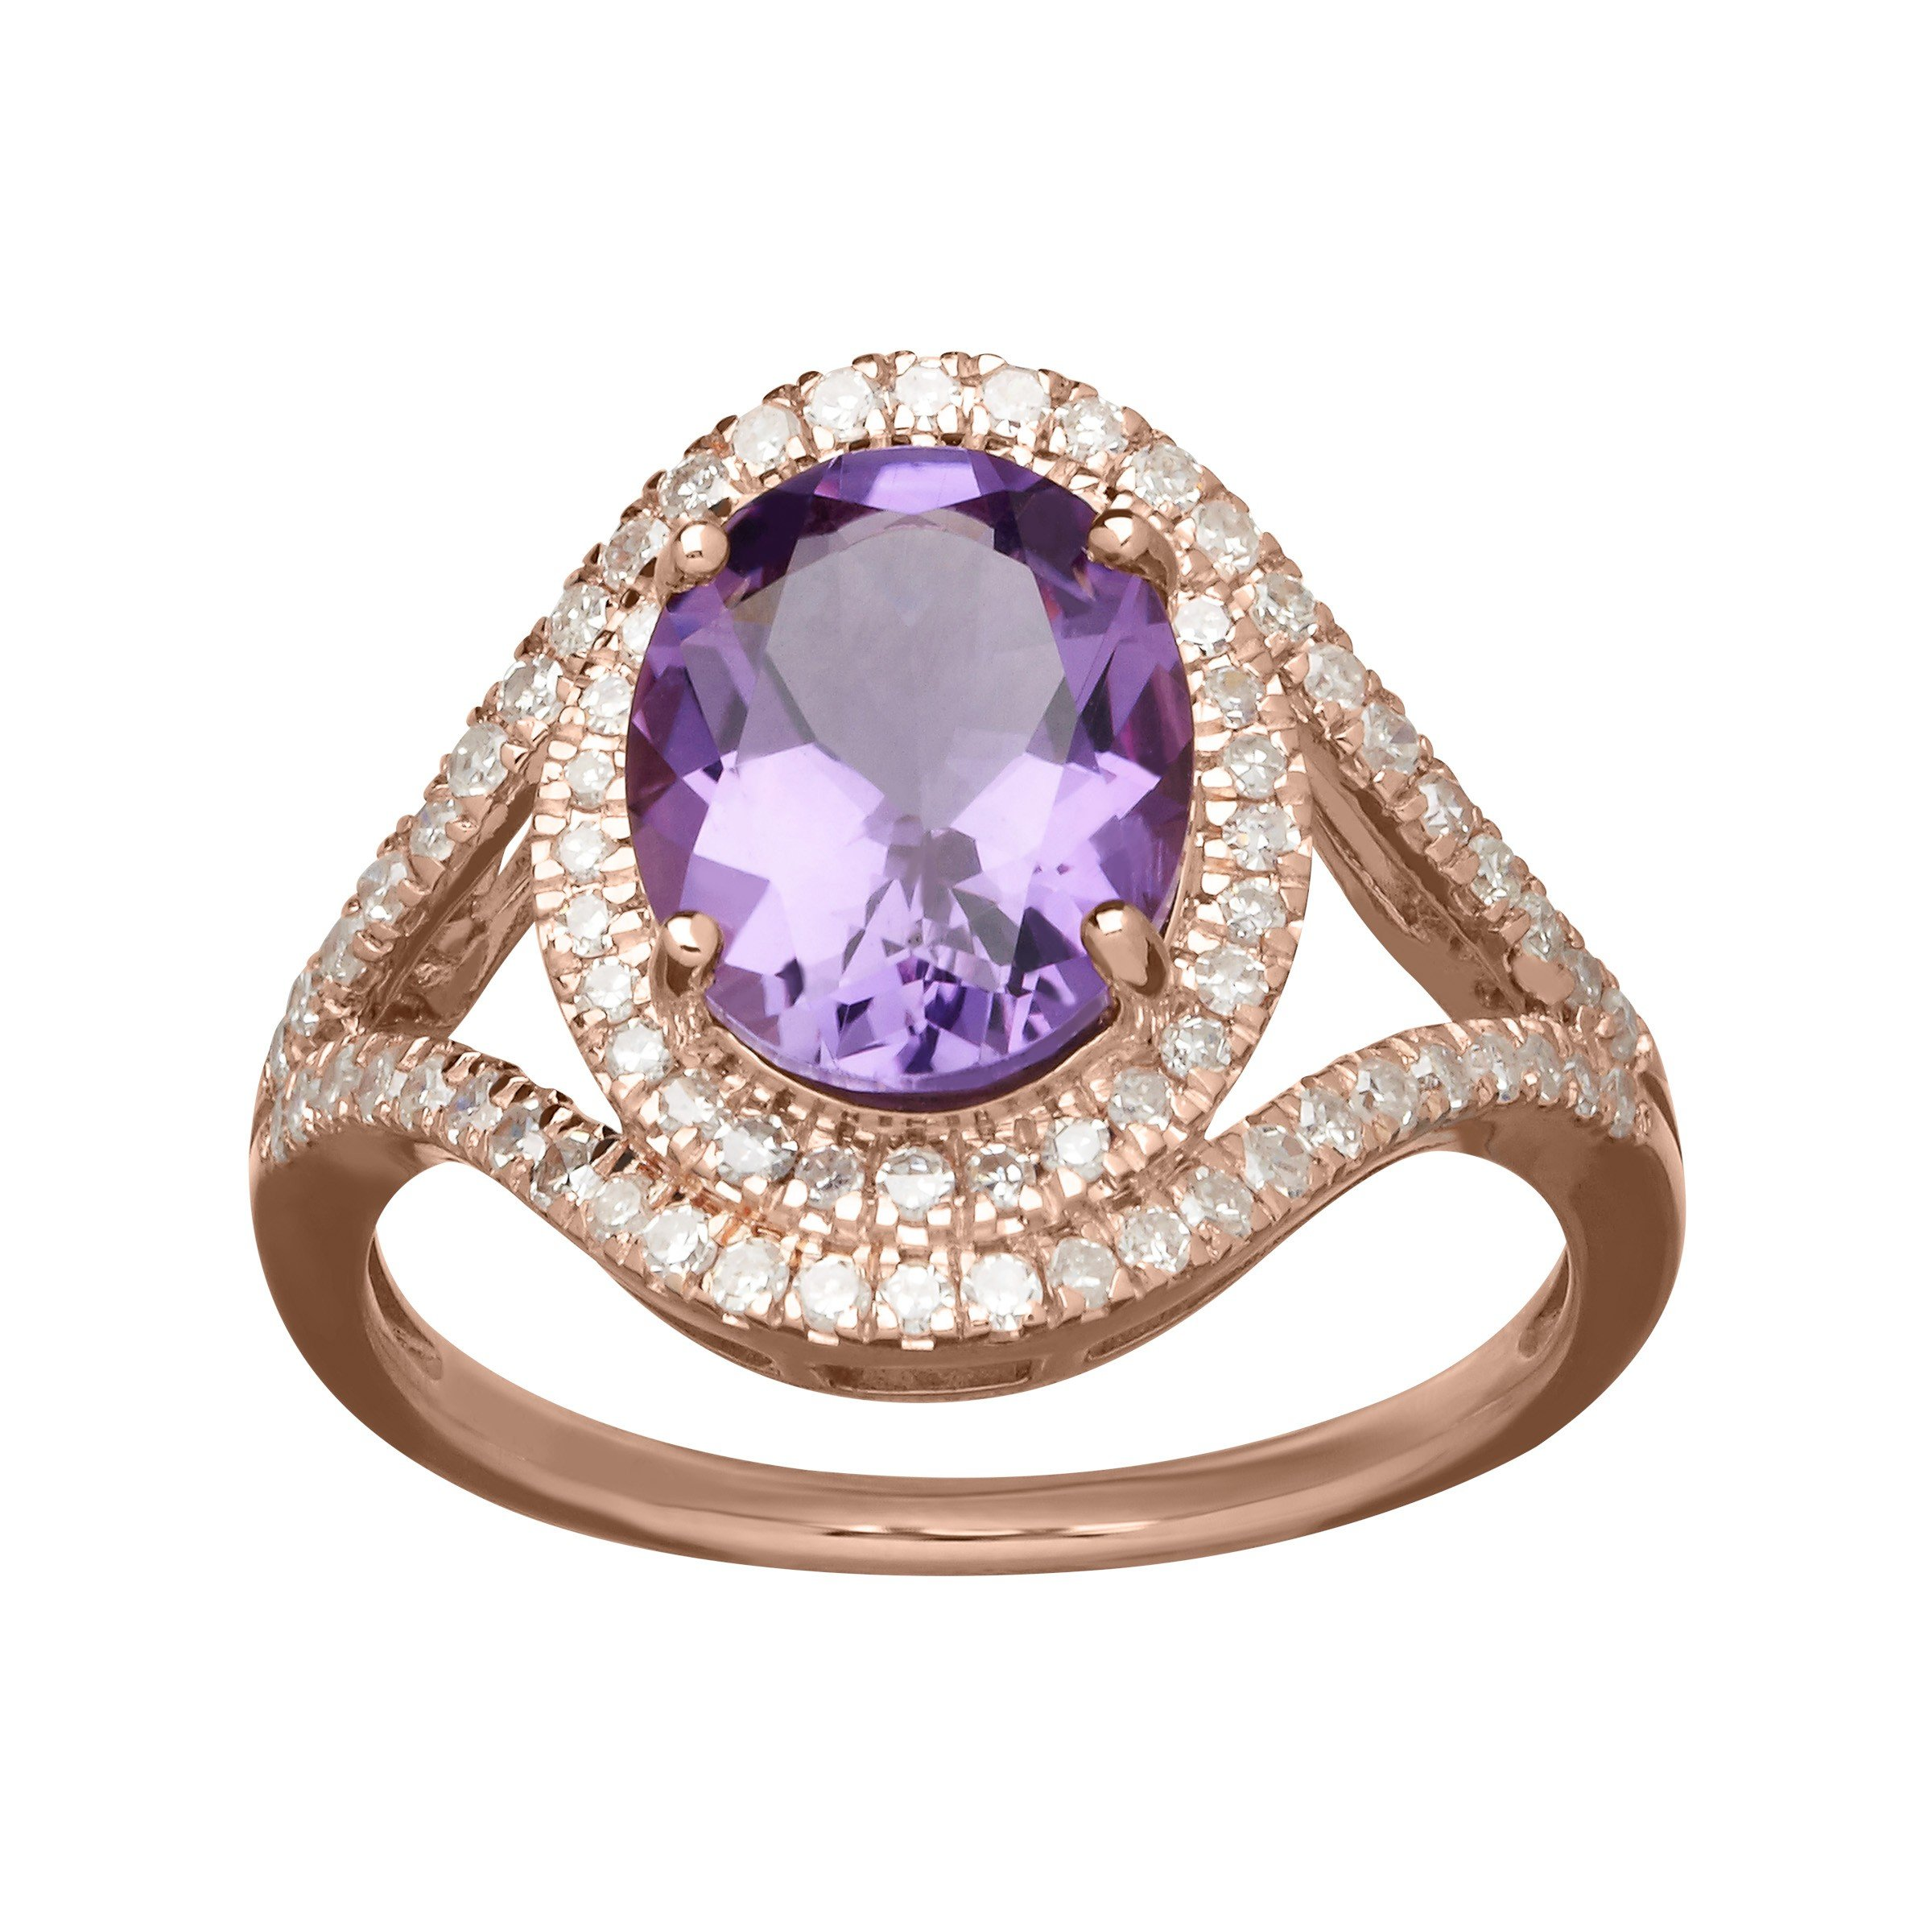 2 3/8 ct Amethyst & 3/8 ct Diamond Ring in 10K Rose Gold Size 7